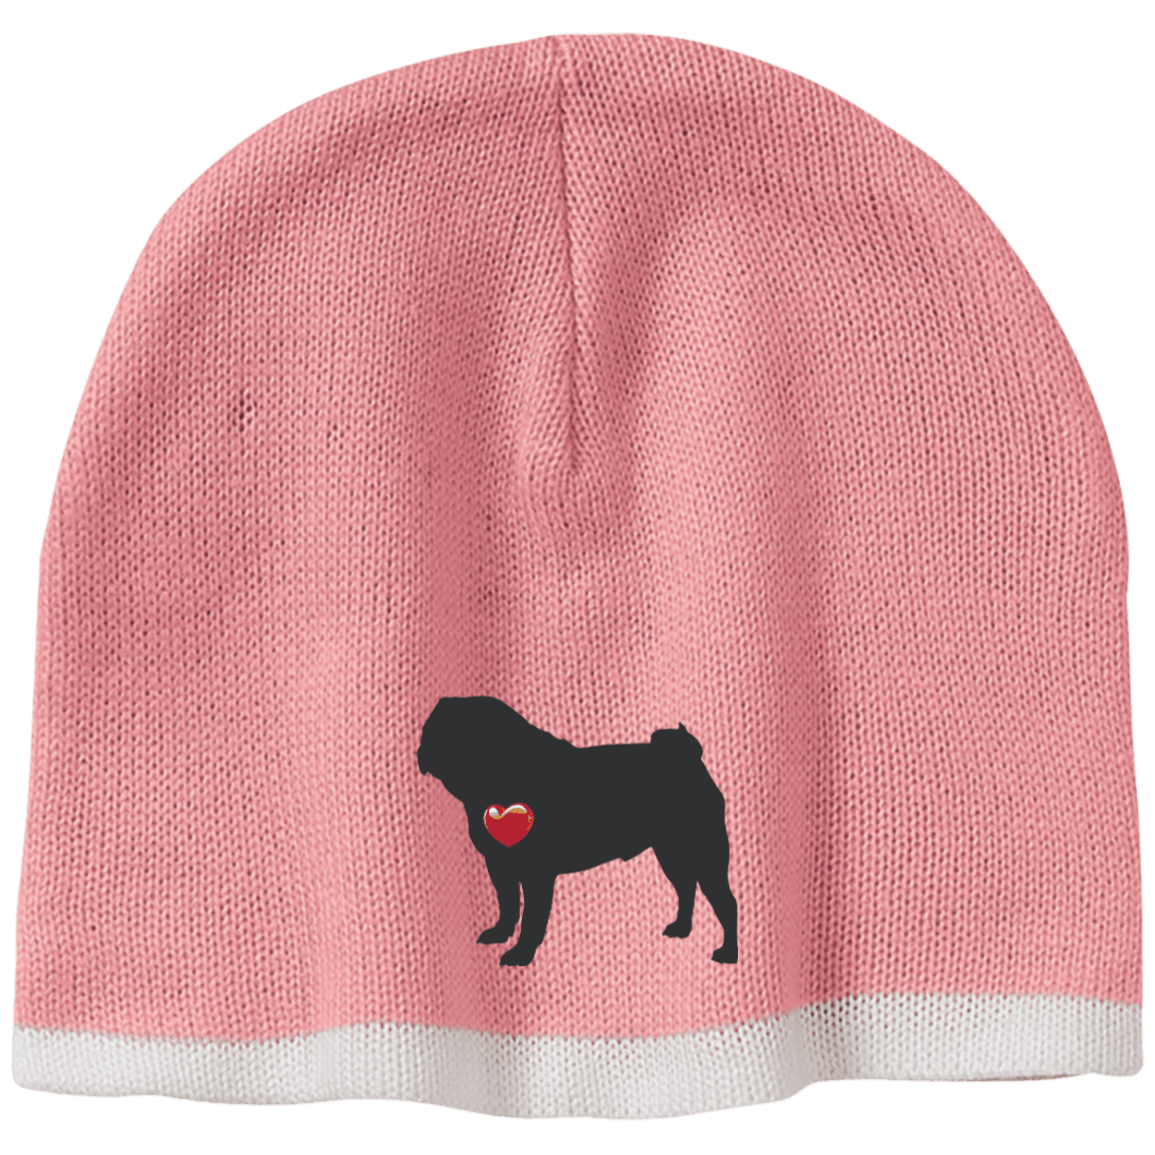 My Heart Pug Beanie – Patch Puppy f6f541ec0b5